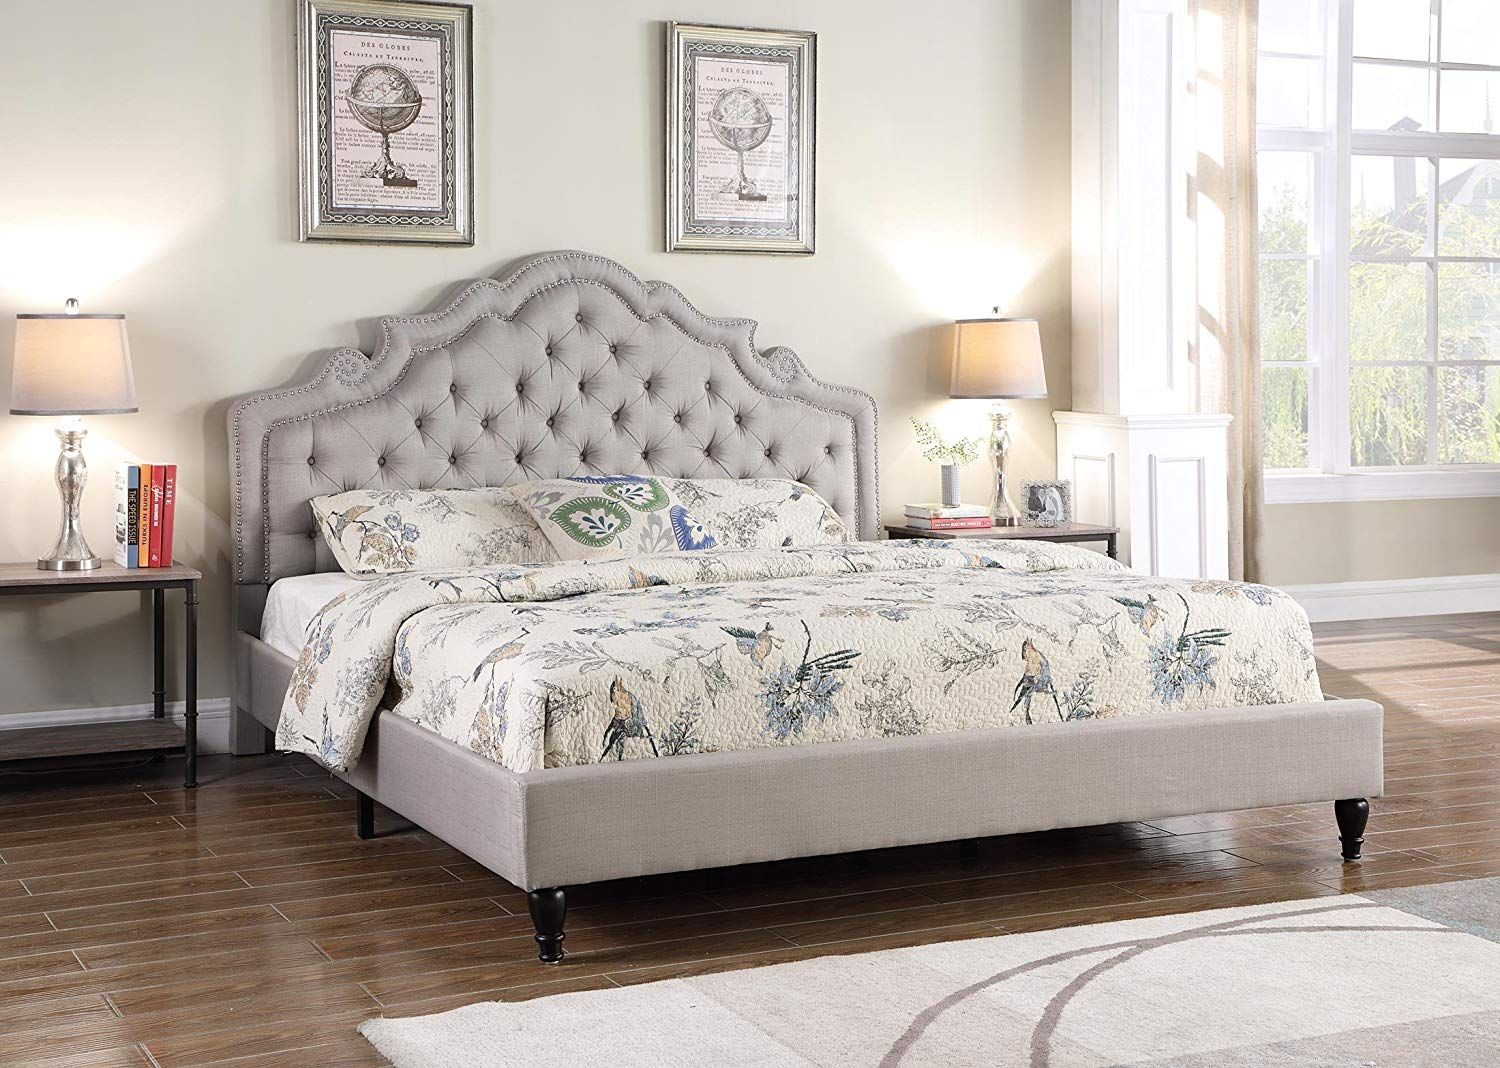 15 Simple Fullsize Platform Bed In Guest House For You